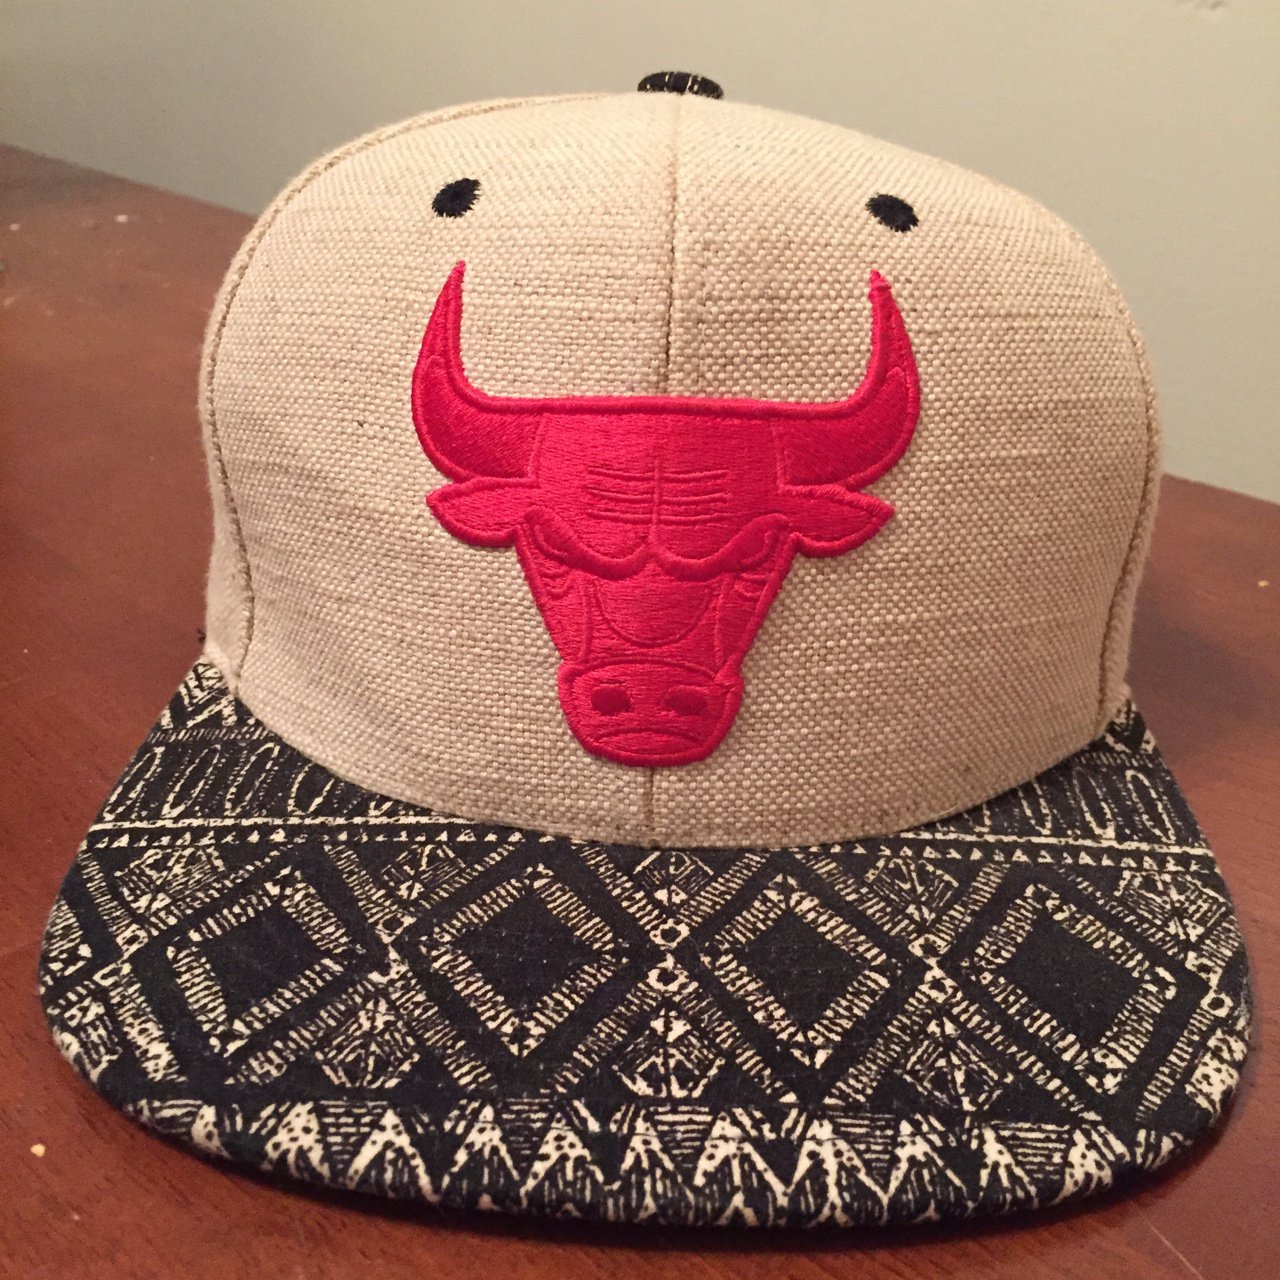 5c82ec96d8f Mitchell and Ness Burlap Chicago Bulls hat with leather - Depop